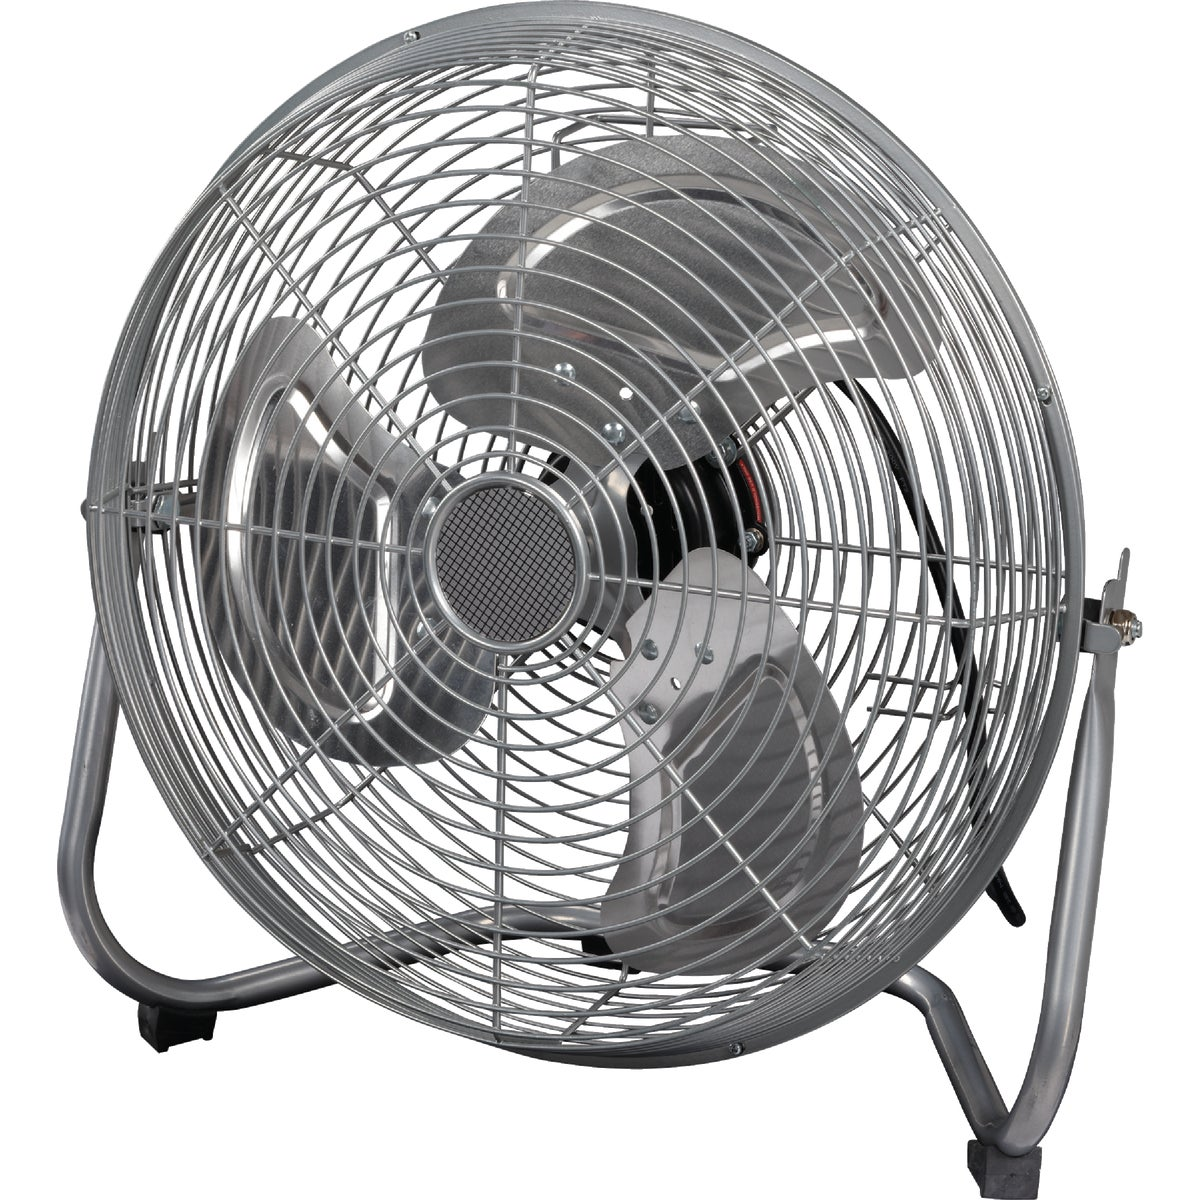 "14"" 3-SPD CHROME HV FAN - FE-35TDO(01) by Do it Best"